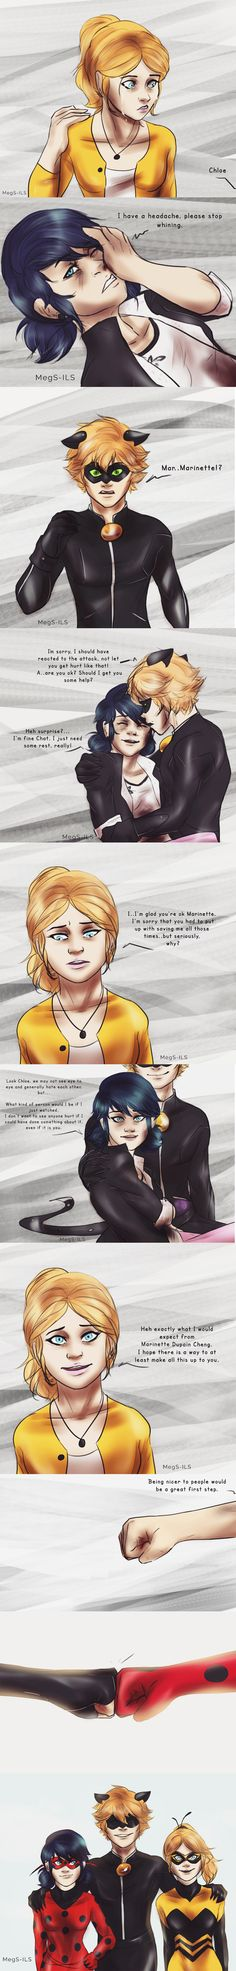 Realization part4 Miraculous Ladybug by MegS-ILS on DeviantArt